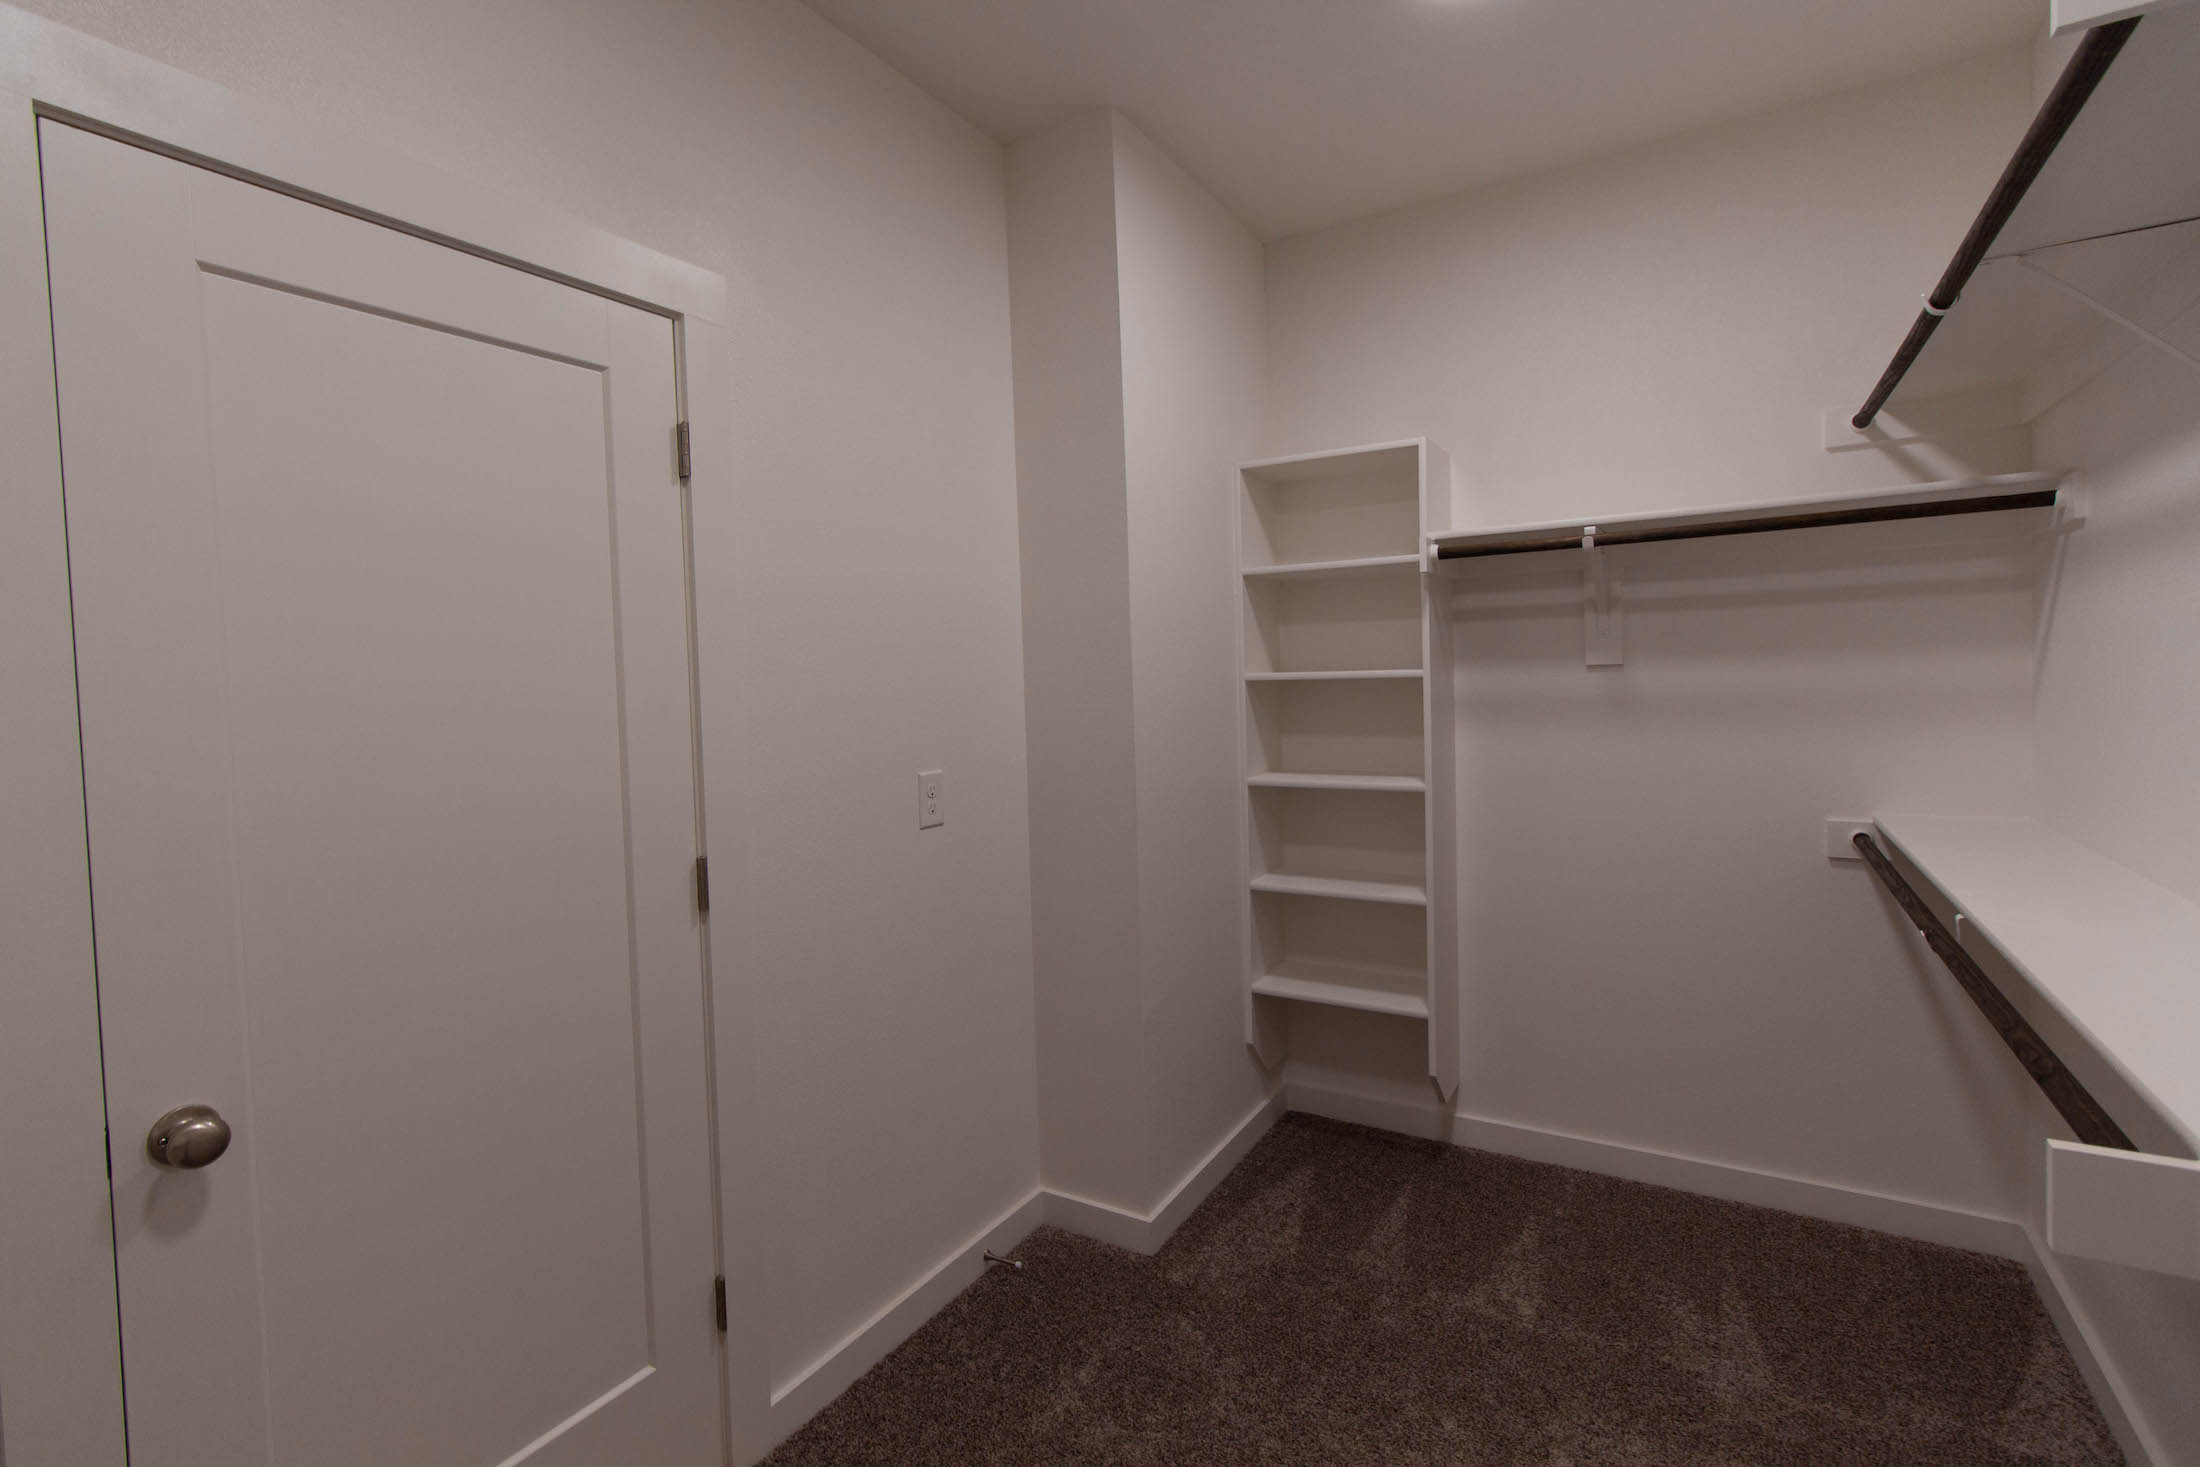 Bedroom Custom Home Design: Master Closet